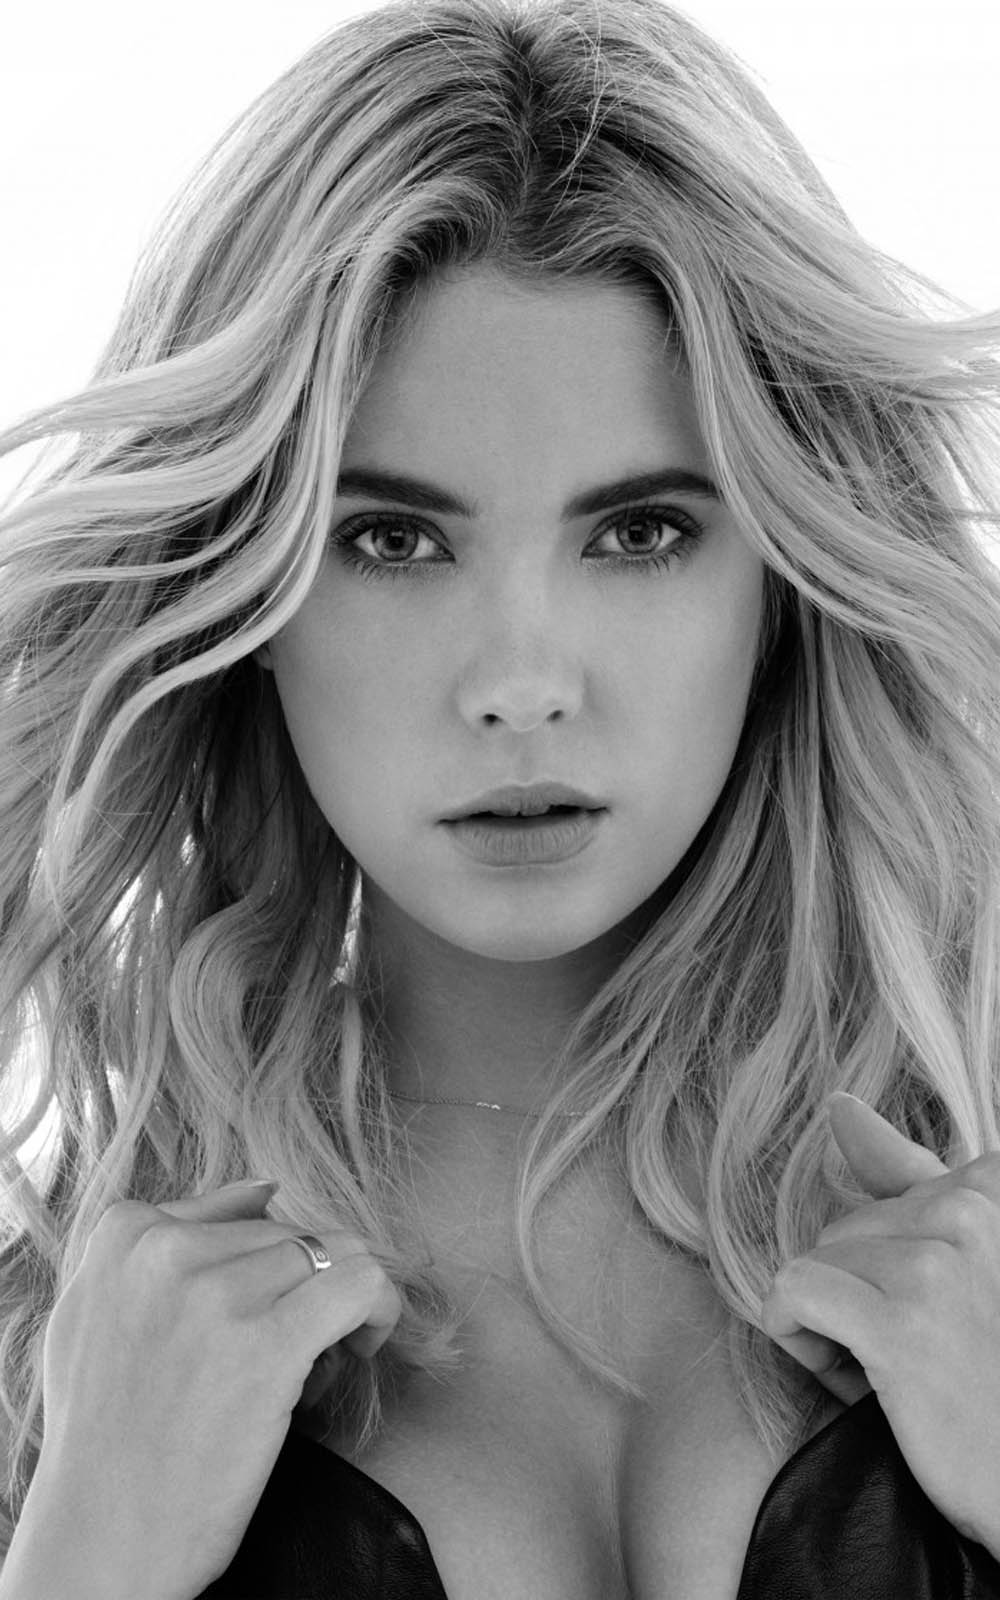 Ashley Benson Hot Topless Photos, Sexy Hd Pictures